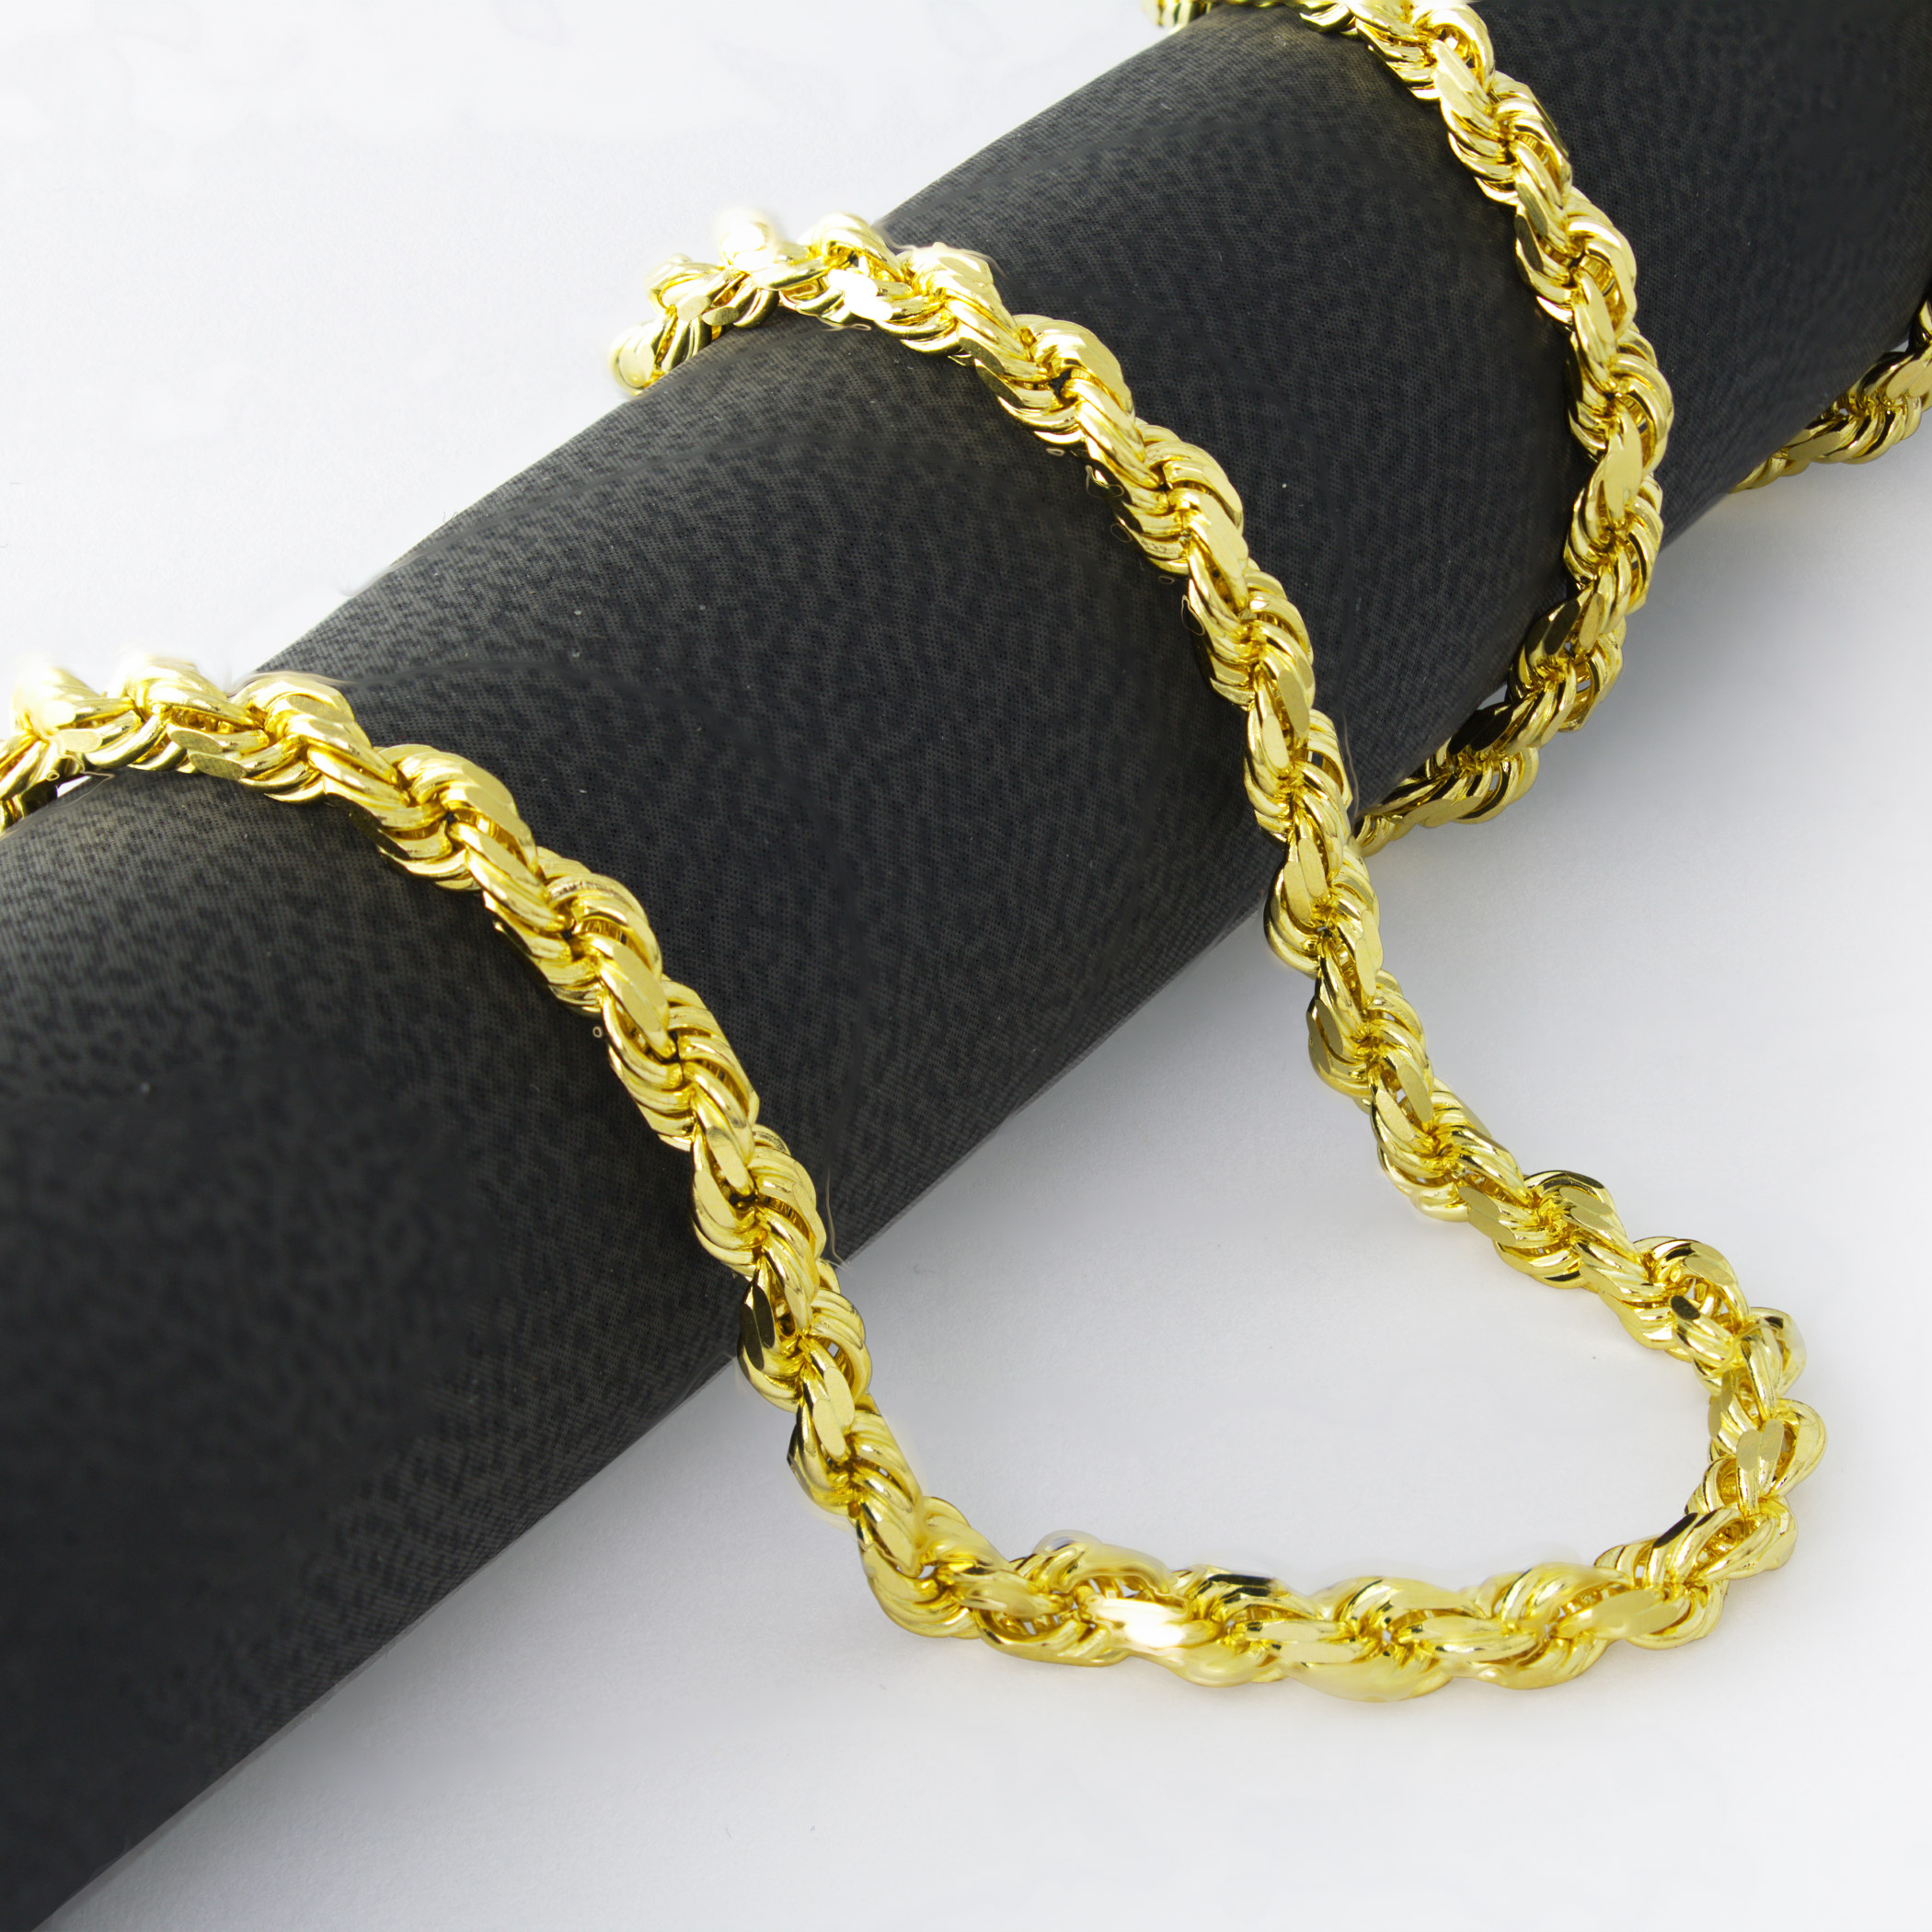 10K-Real-Yellow-Gold-Mens-Wide-5mm-Diamond-Cut-Rope-Chain-Bracelet-8-034-8-5-034-9-034 thumbnail 44